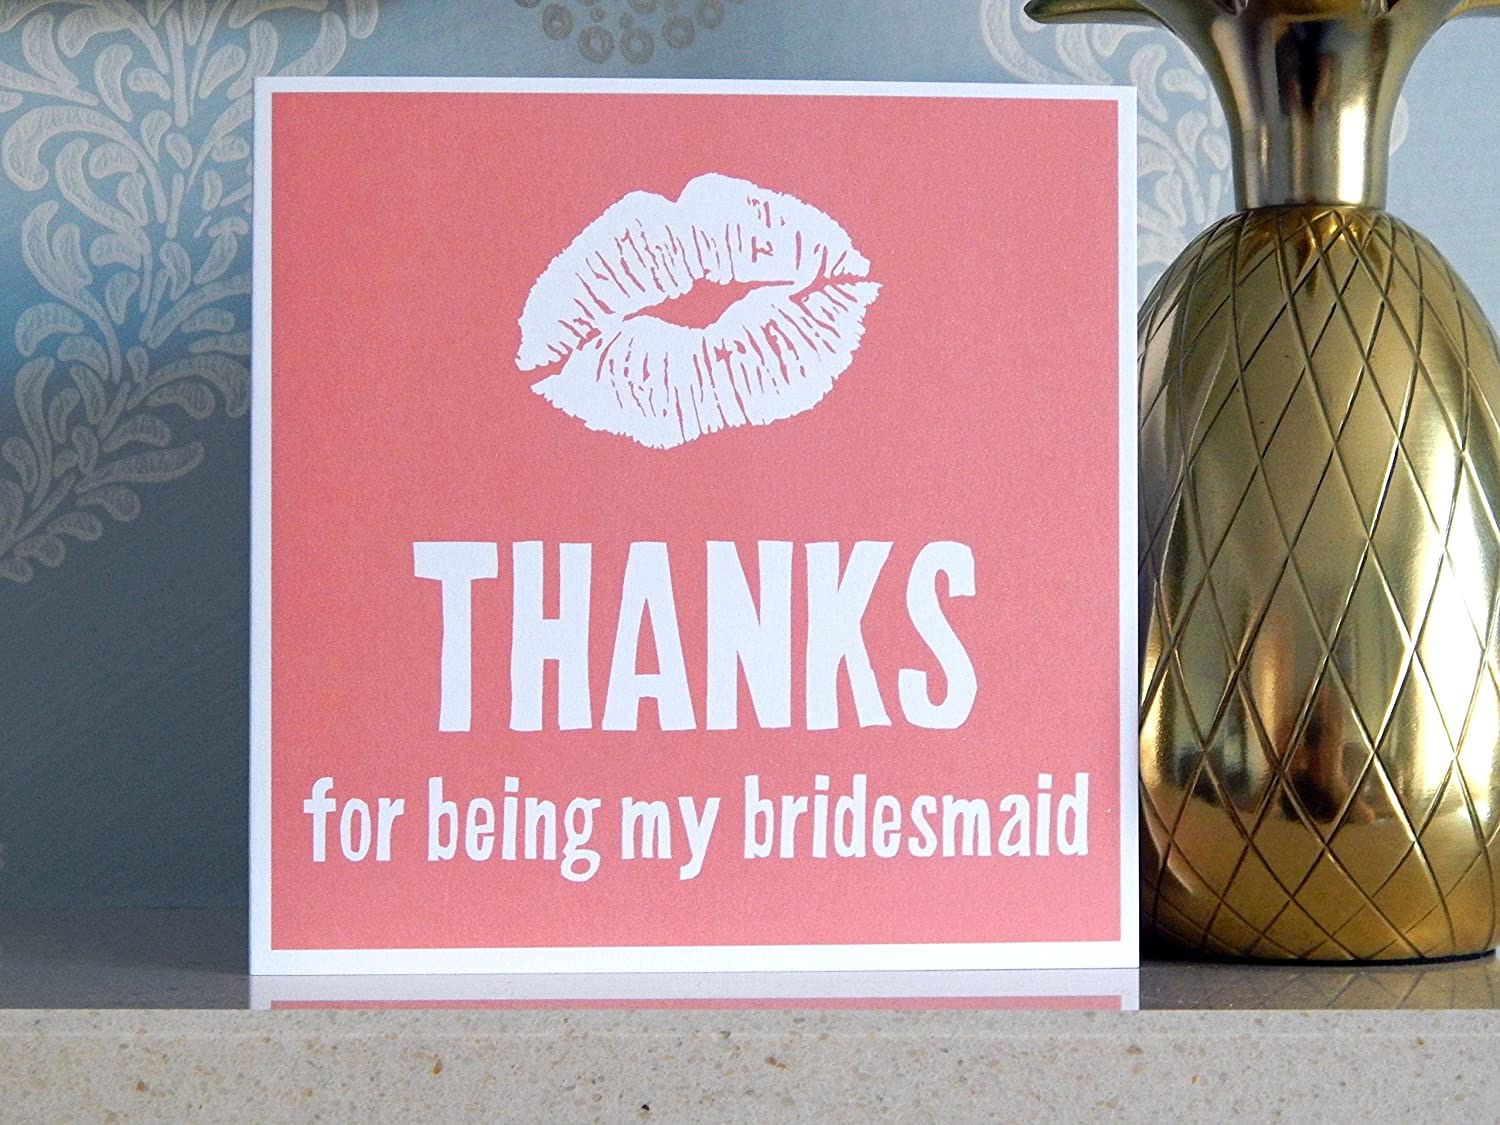 Thanks for Being My Bridesmaid Card Kiss Wedding Bridesmaid Thank You Card with Envelope Bridesmaids Thankyou Cards